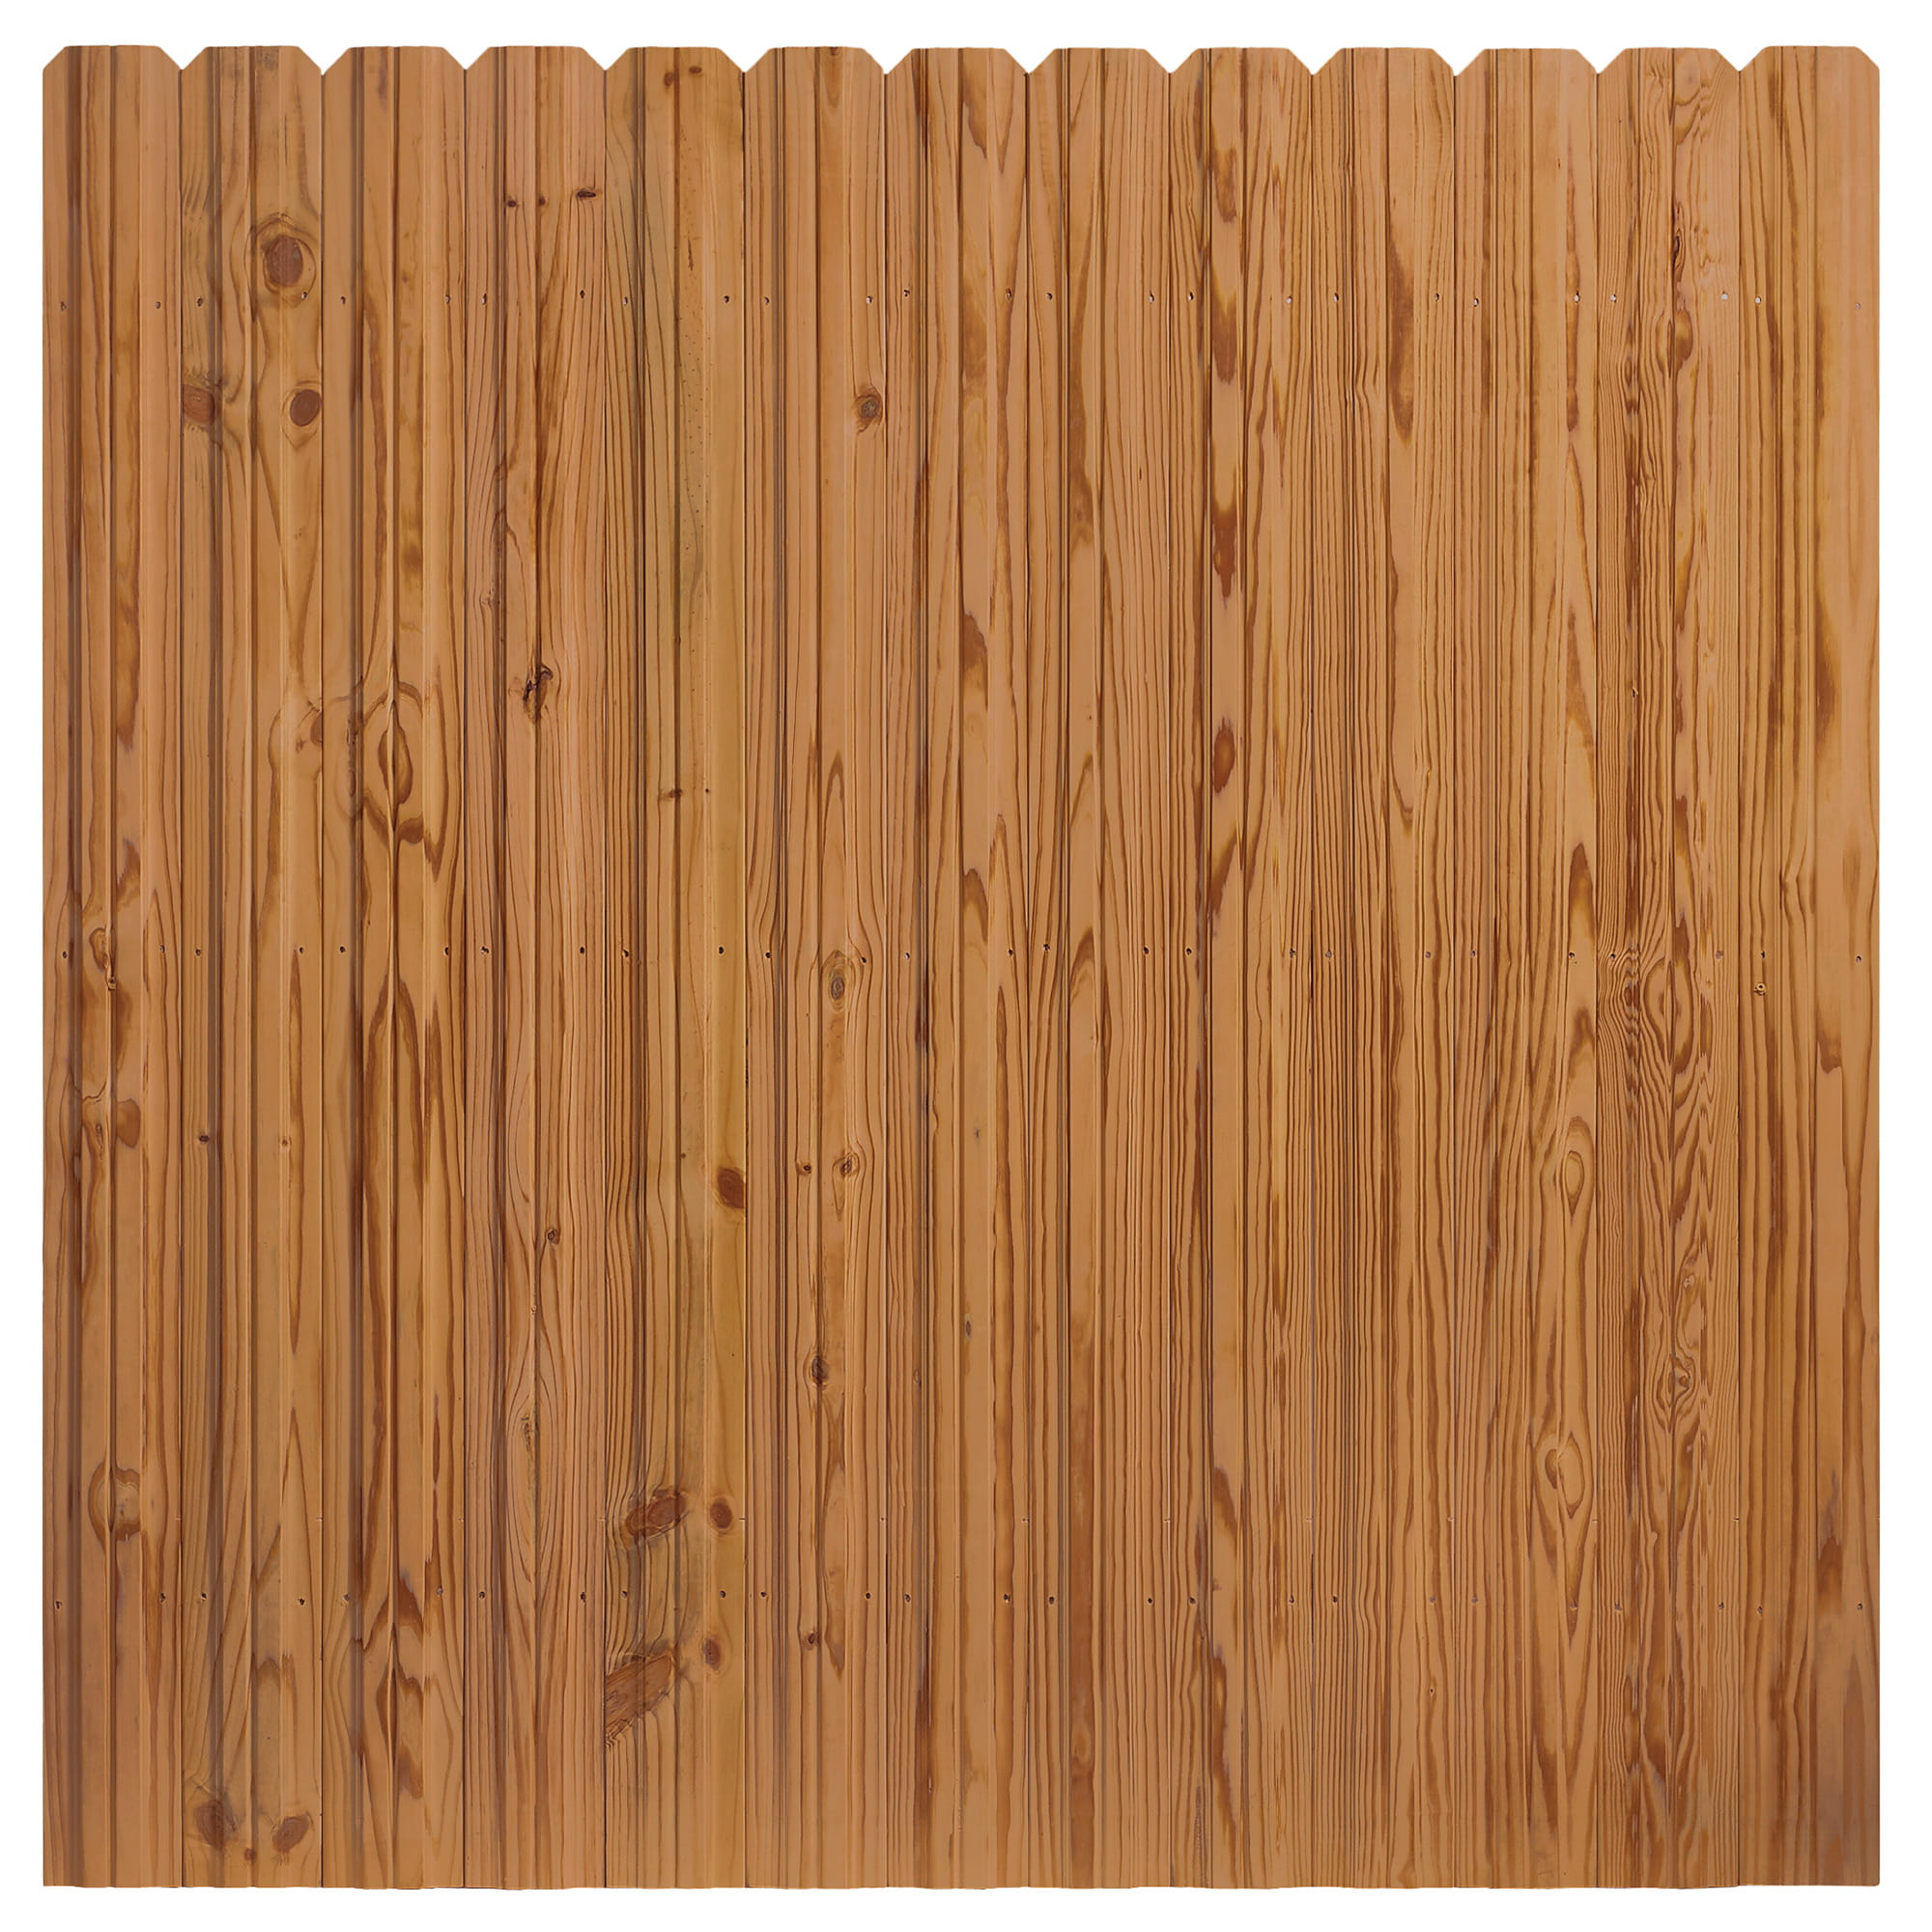 Outdoor Essentials cedar tone dog eared 6 by 6 privacy panel